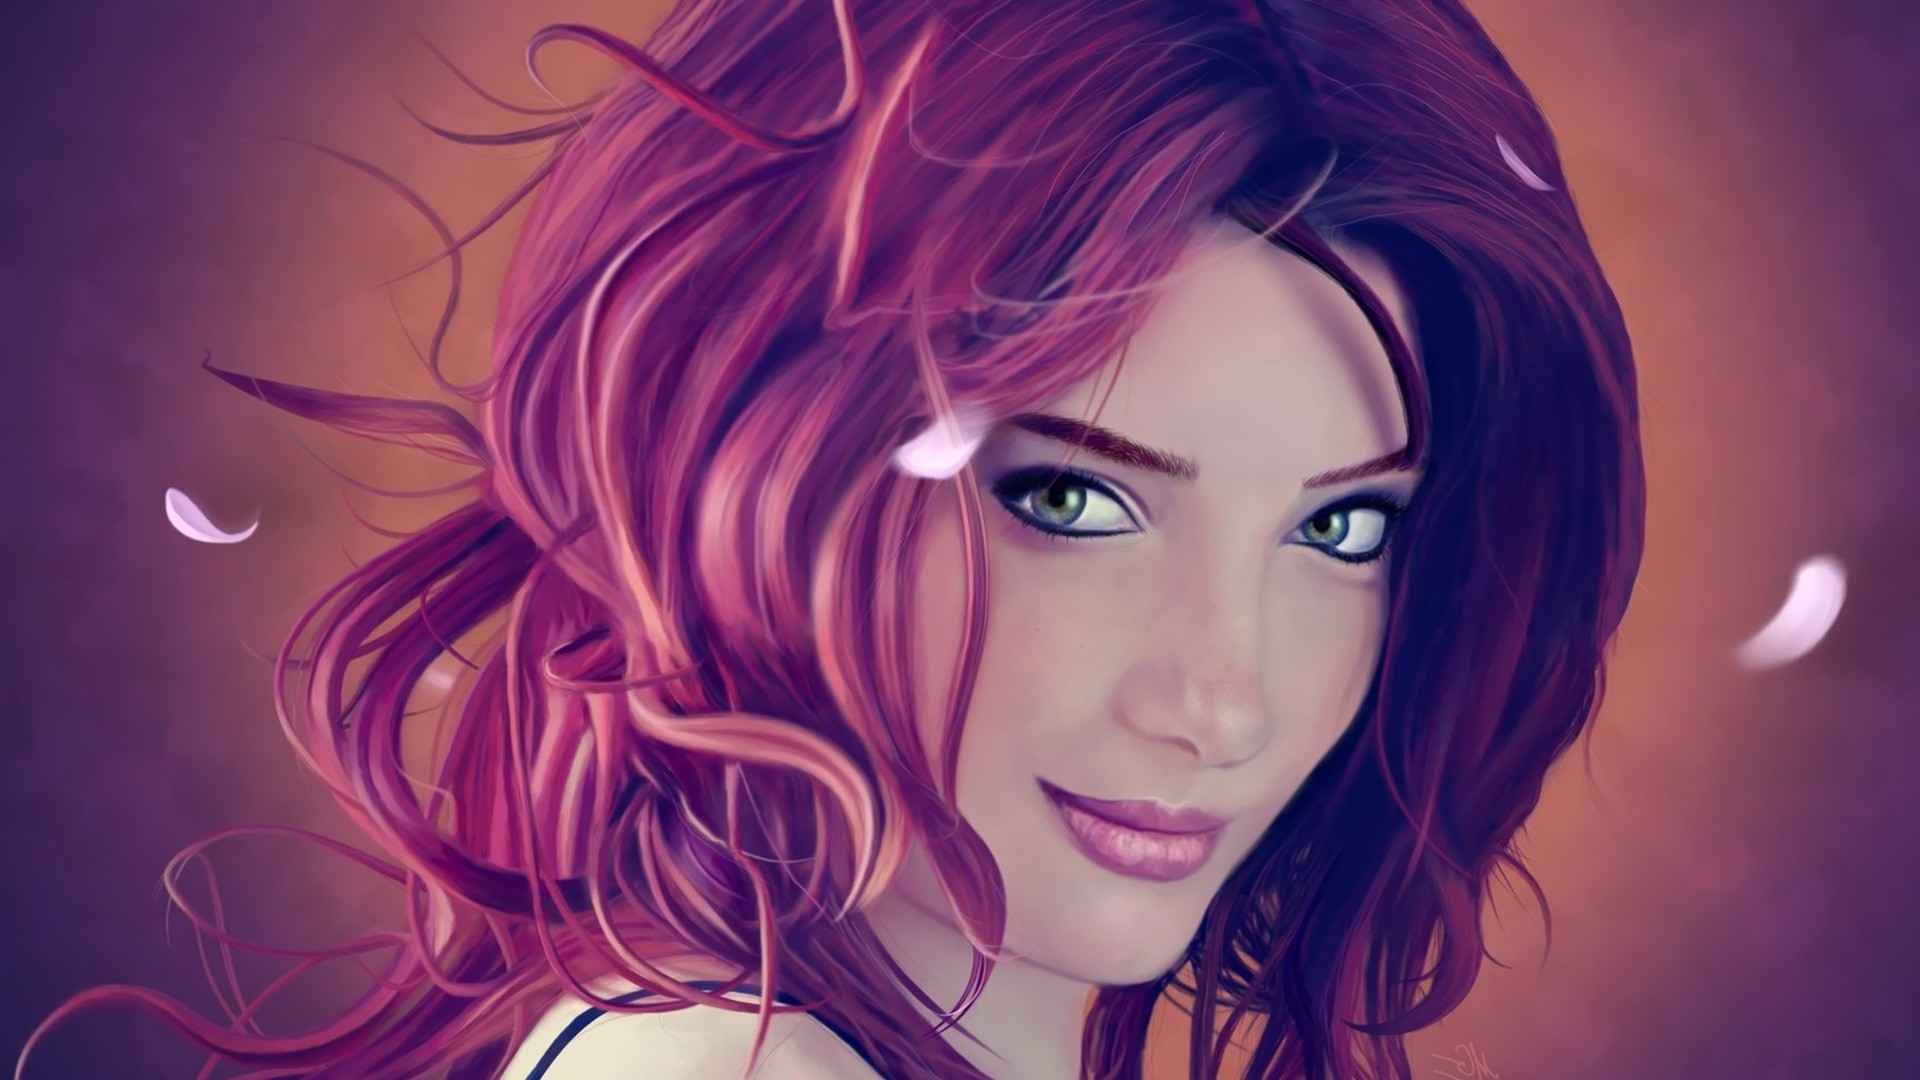 Anime Portrait Wallpaper 1920x1080 Download Hd Wallpaper Wallpapertip